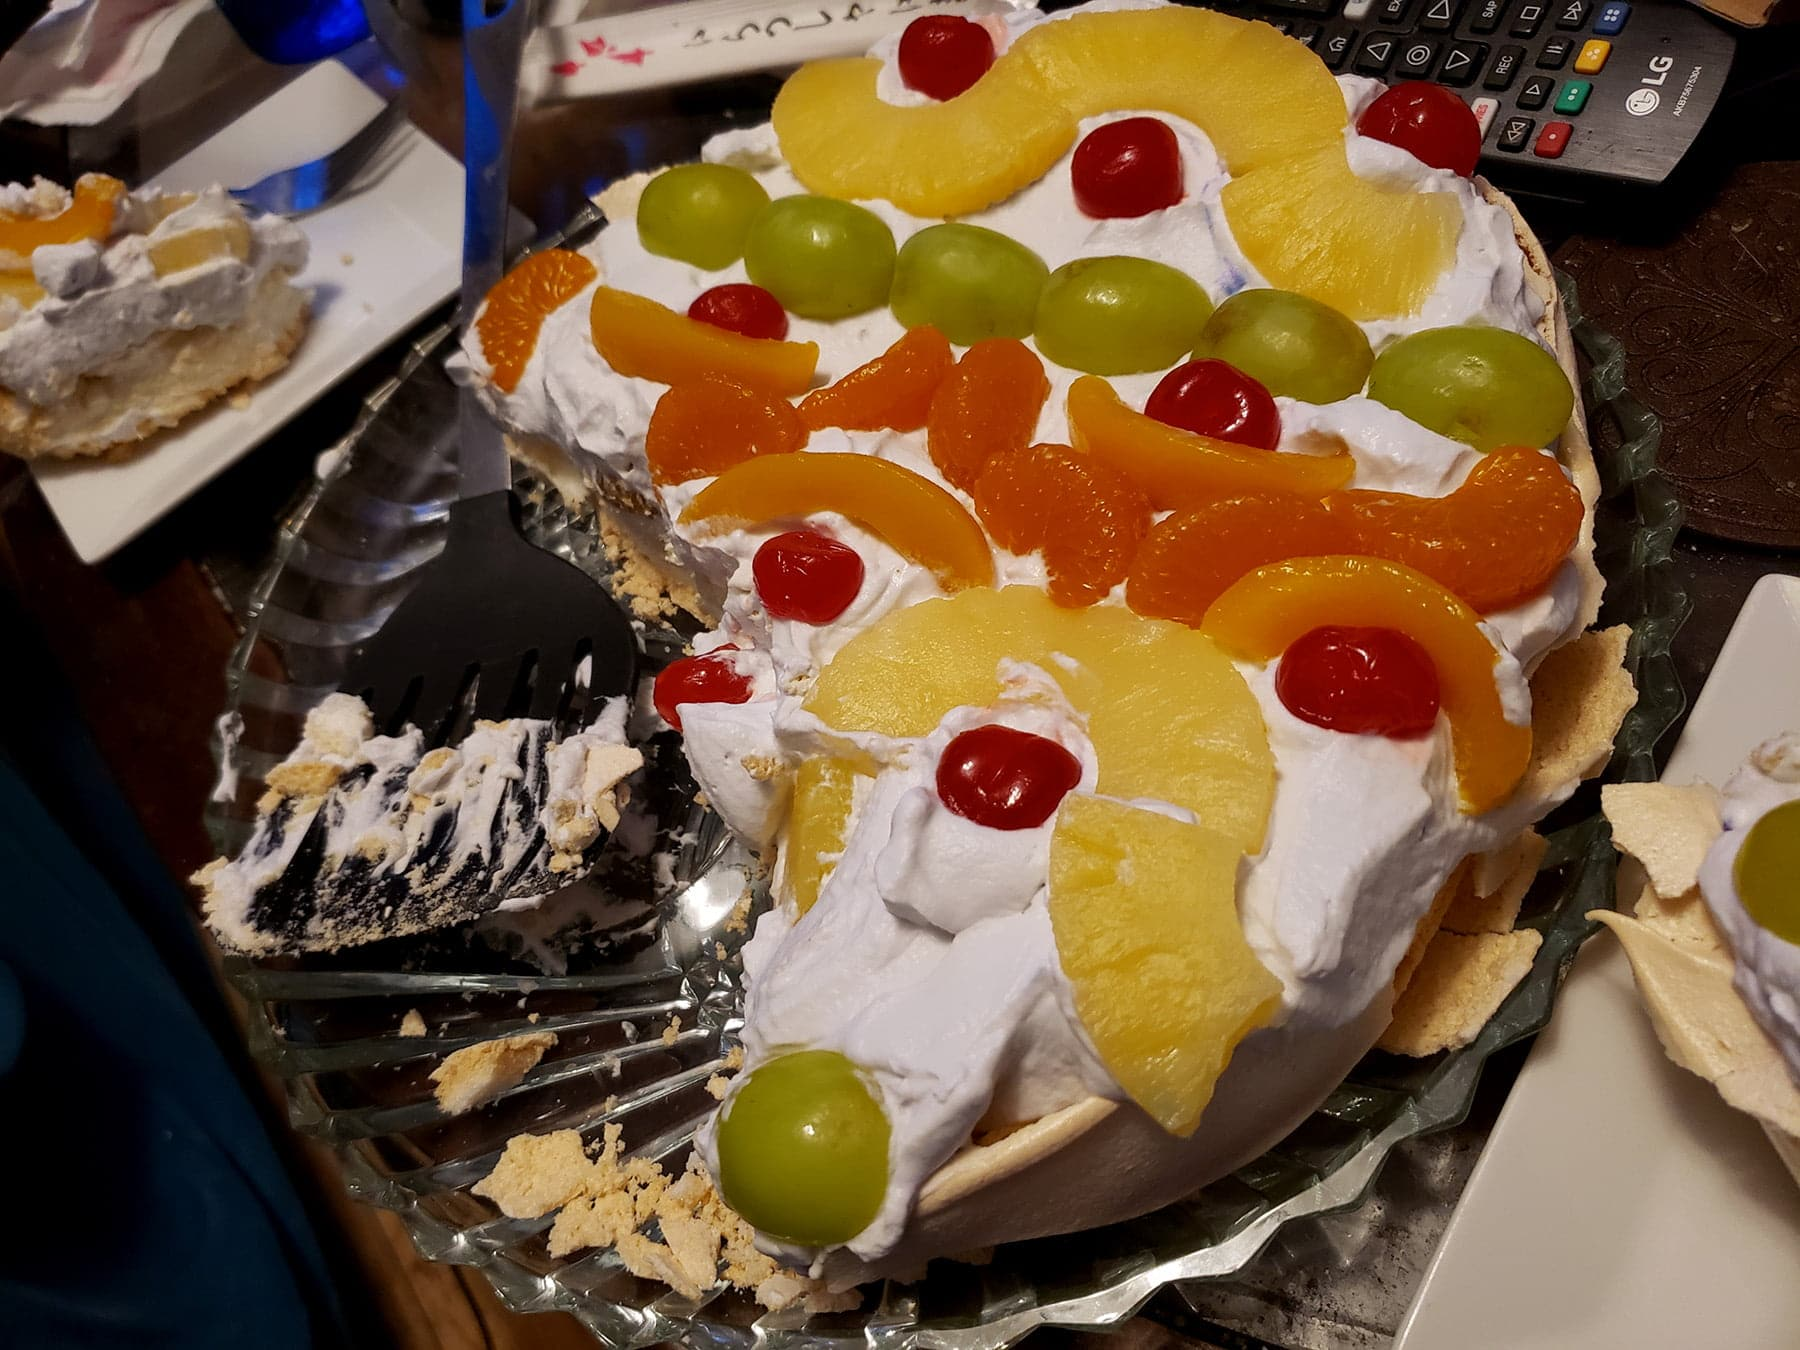 A half eaten easter egg pavlova is shown on a cluttered coffeetable.